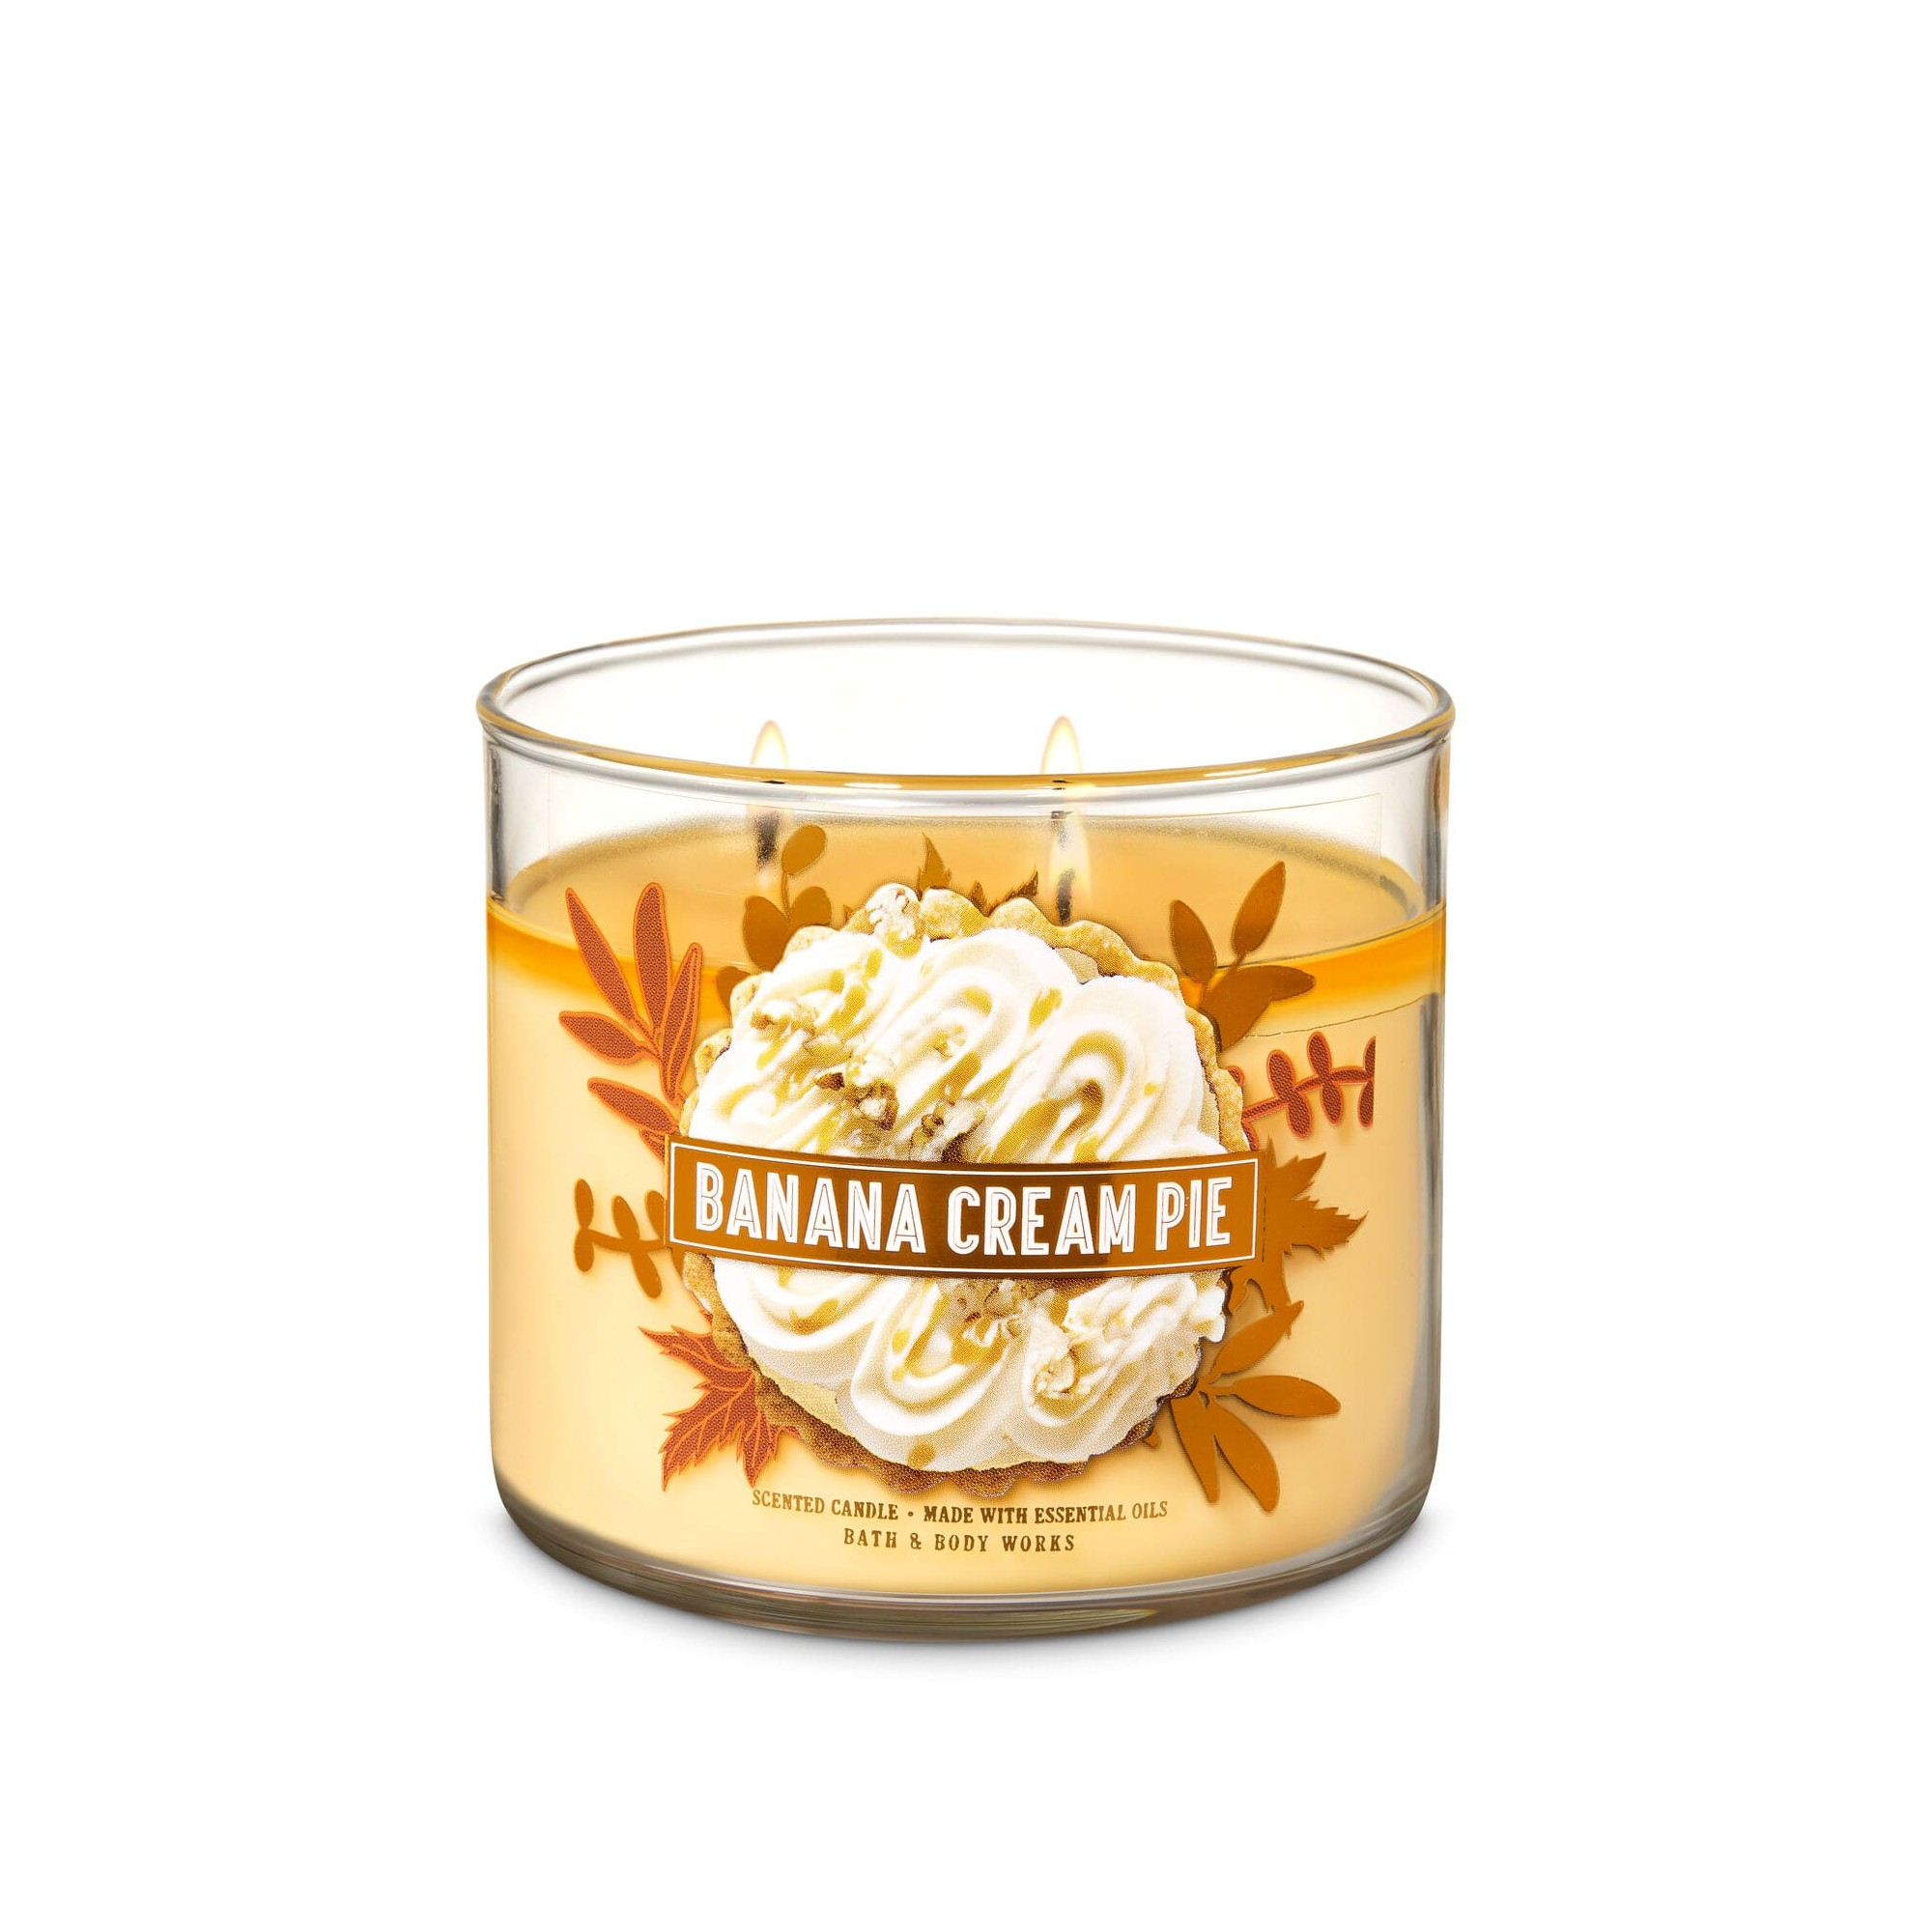 Bath & Body Works Banana Cream Pie 3 Wick Scented Candle